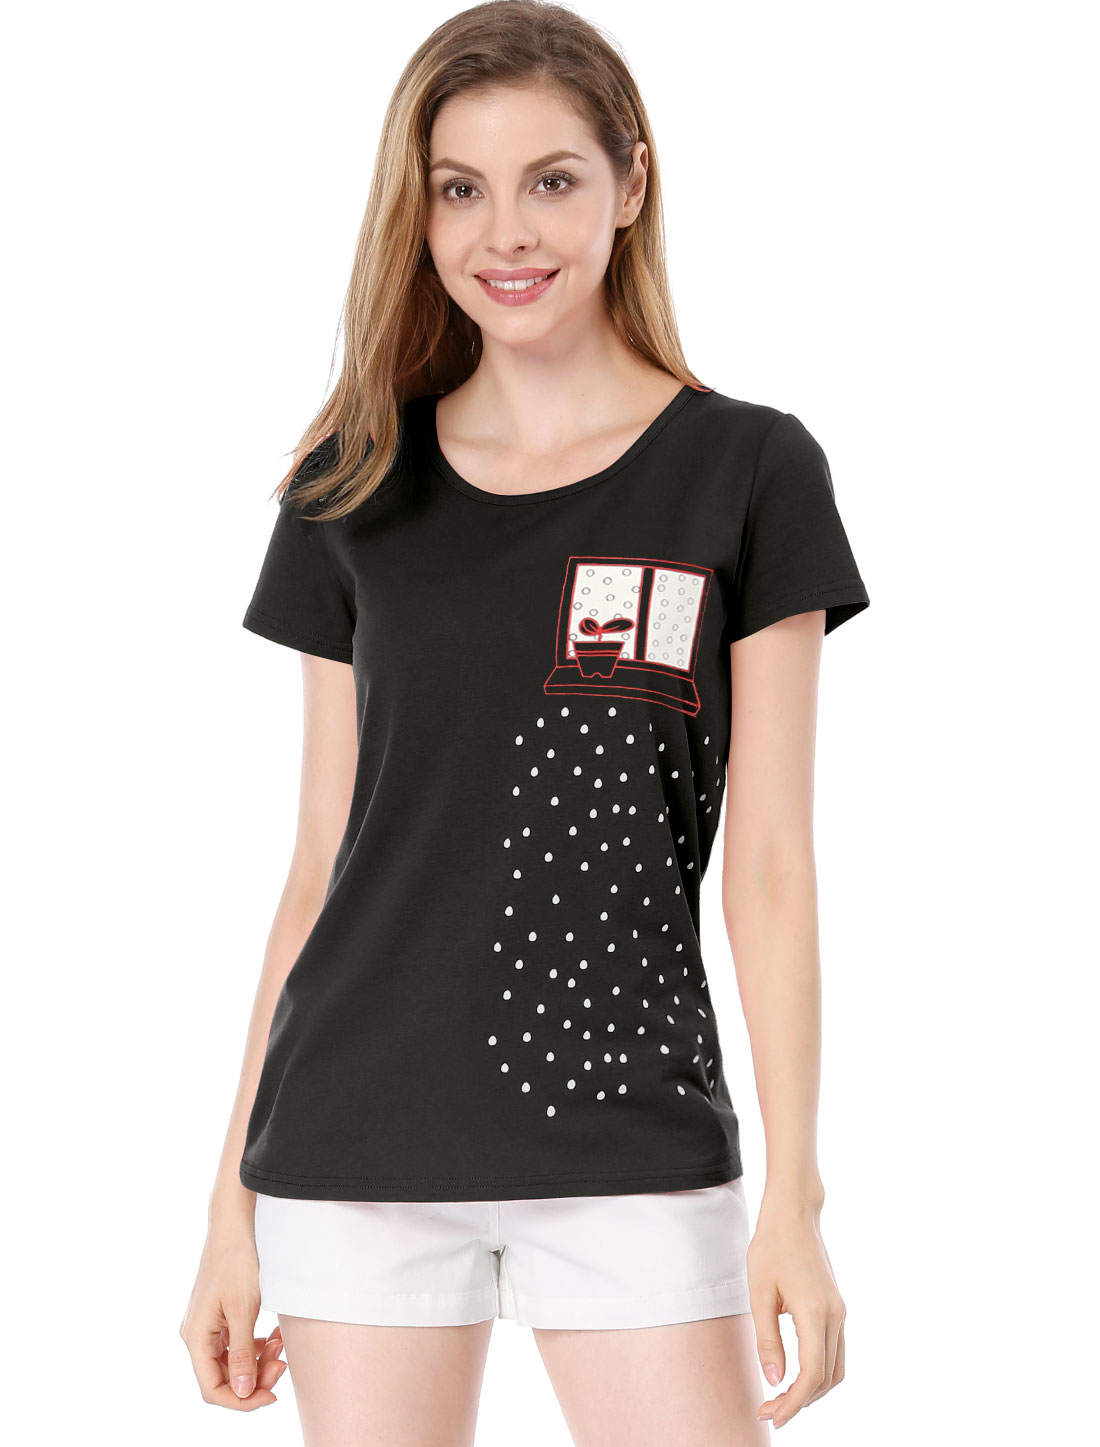 Pullover Short Sleeve Novelty Pattern Black T-Shirt M for Lady